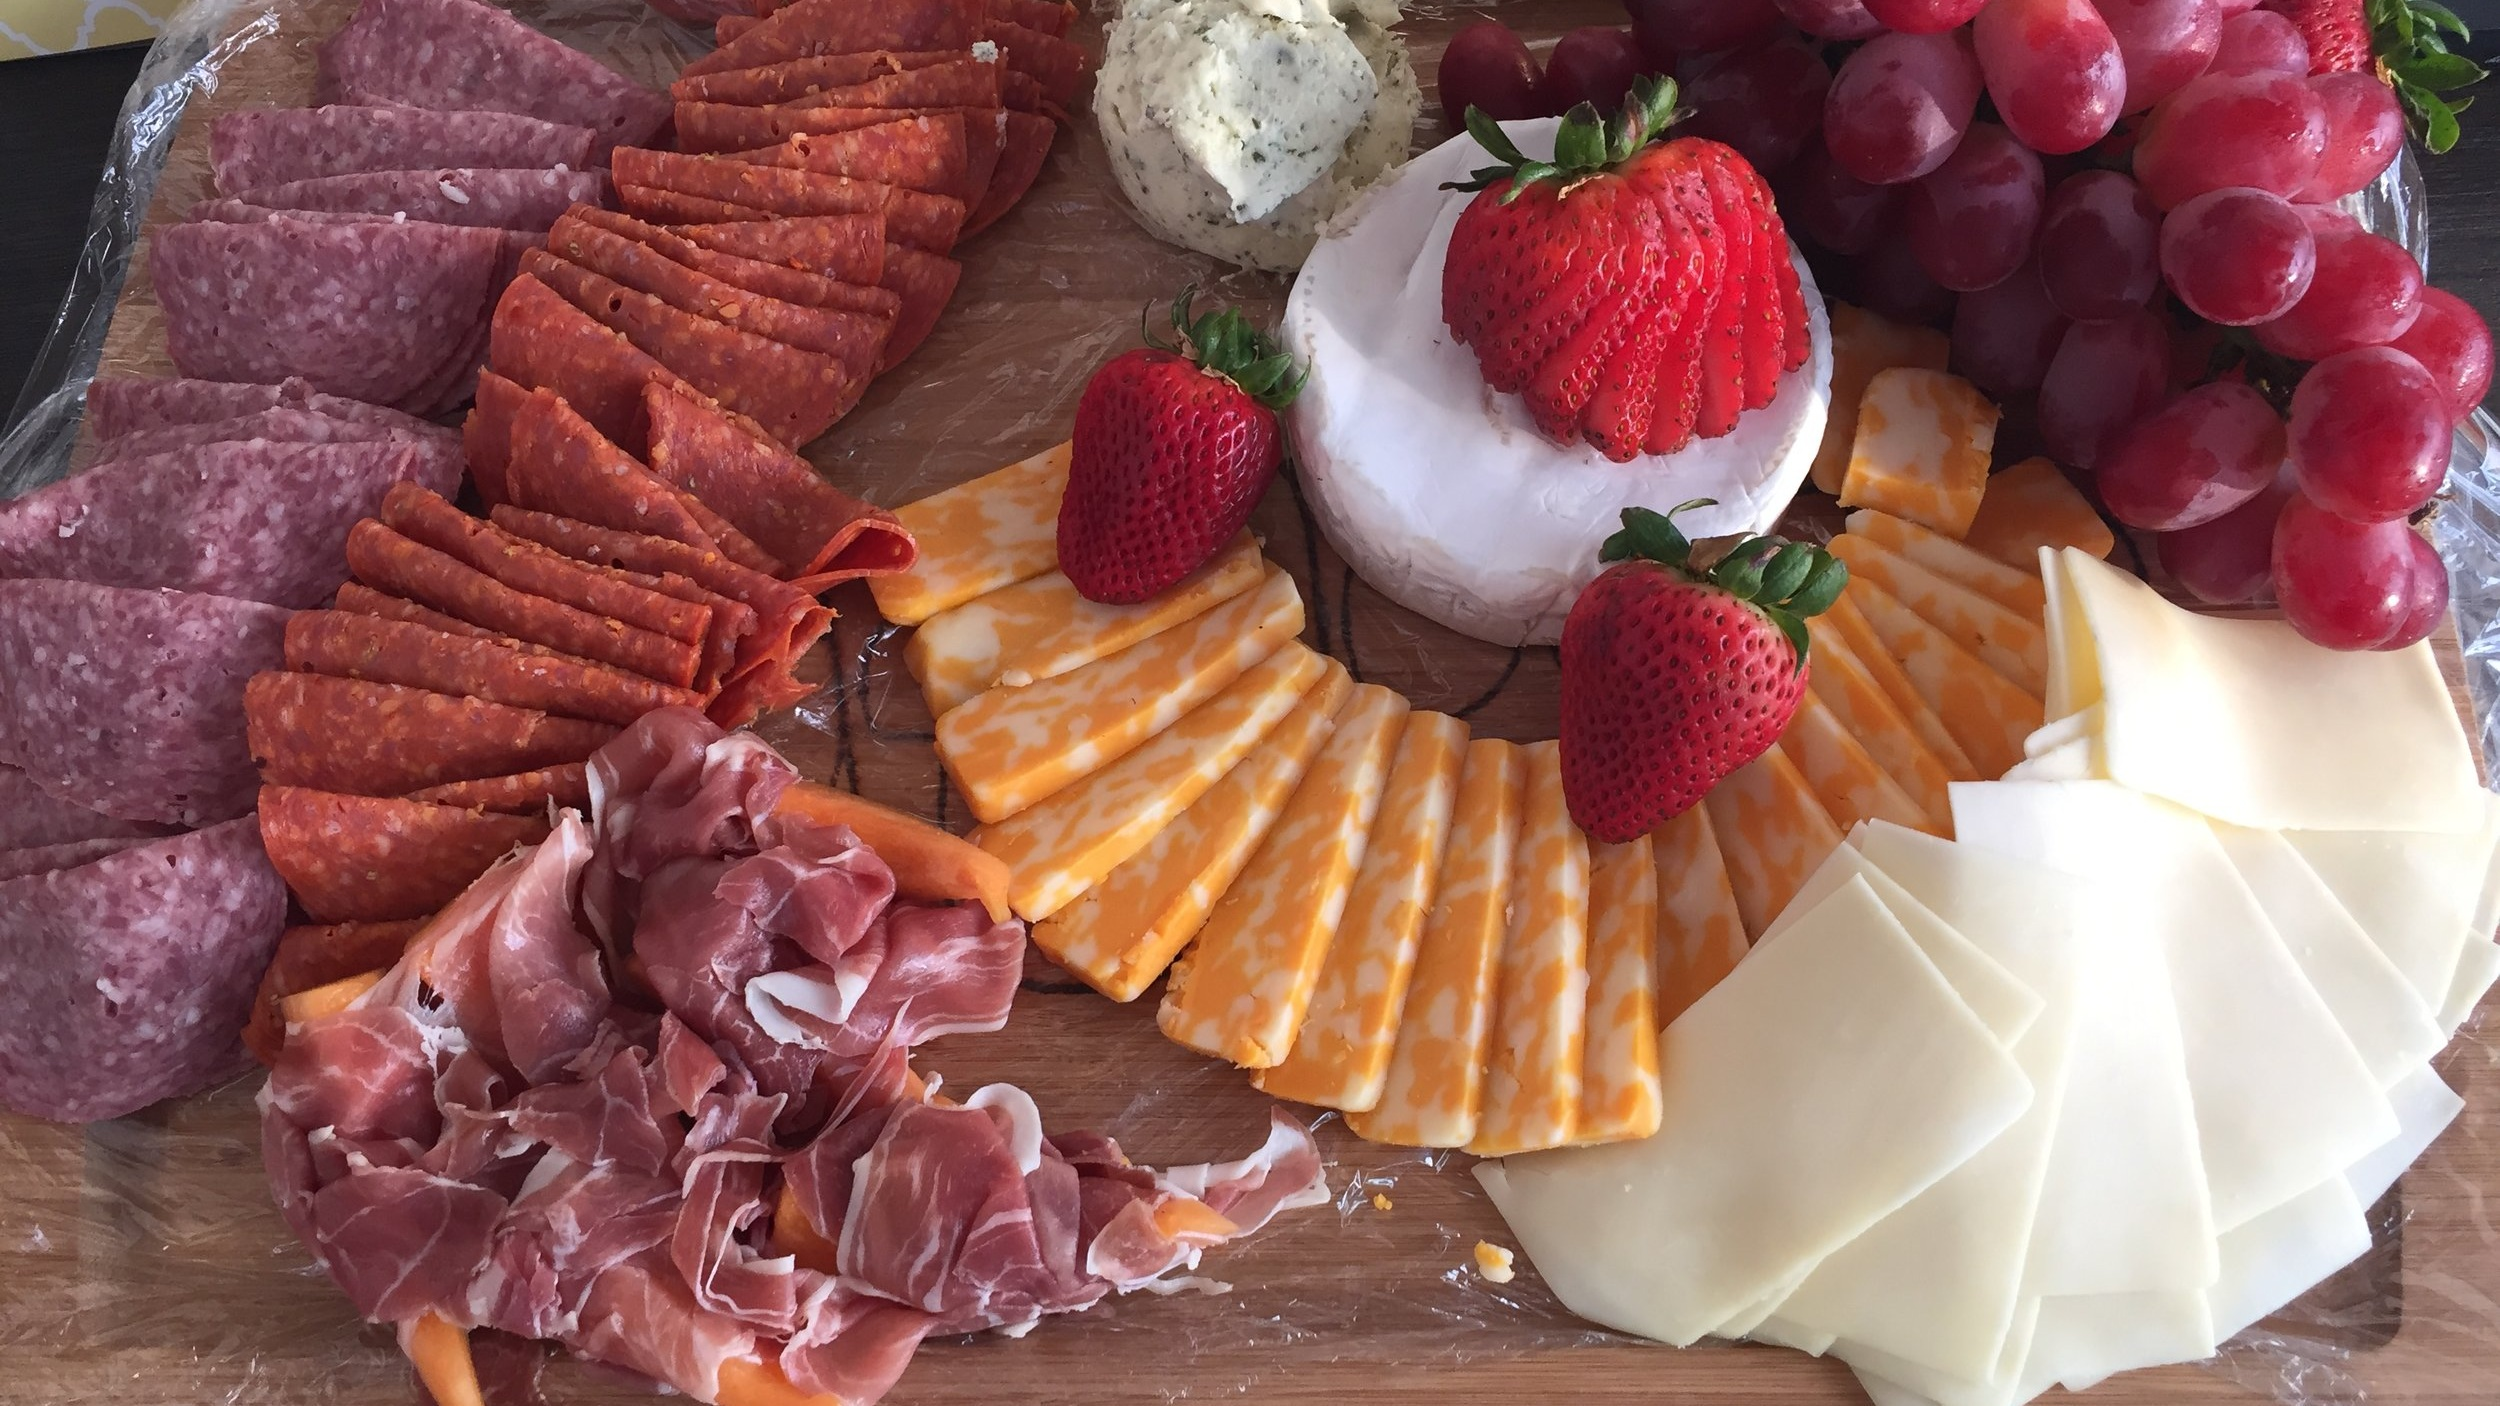 Meat, Cheese & Fruit Charcuterie Board